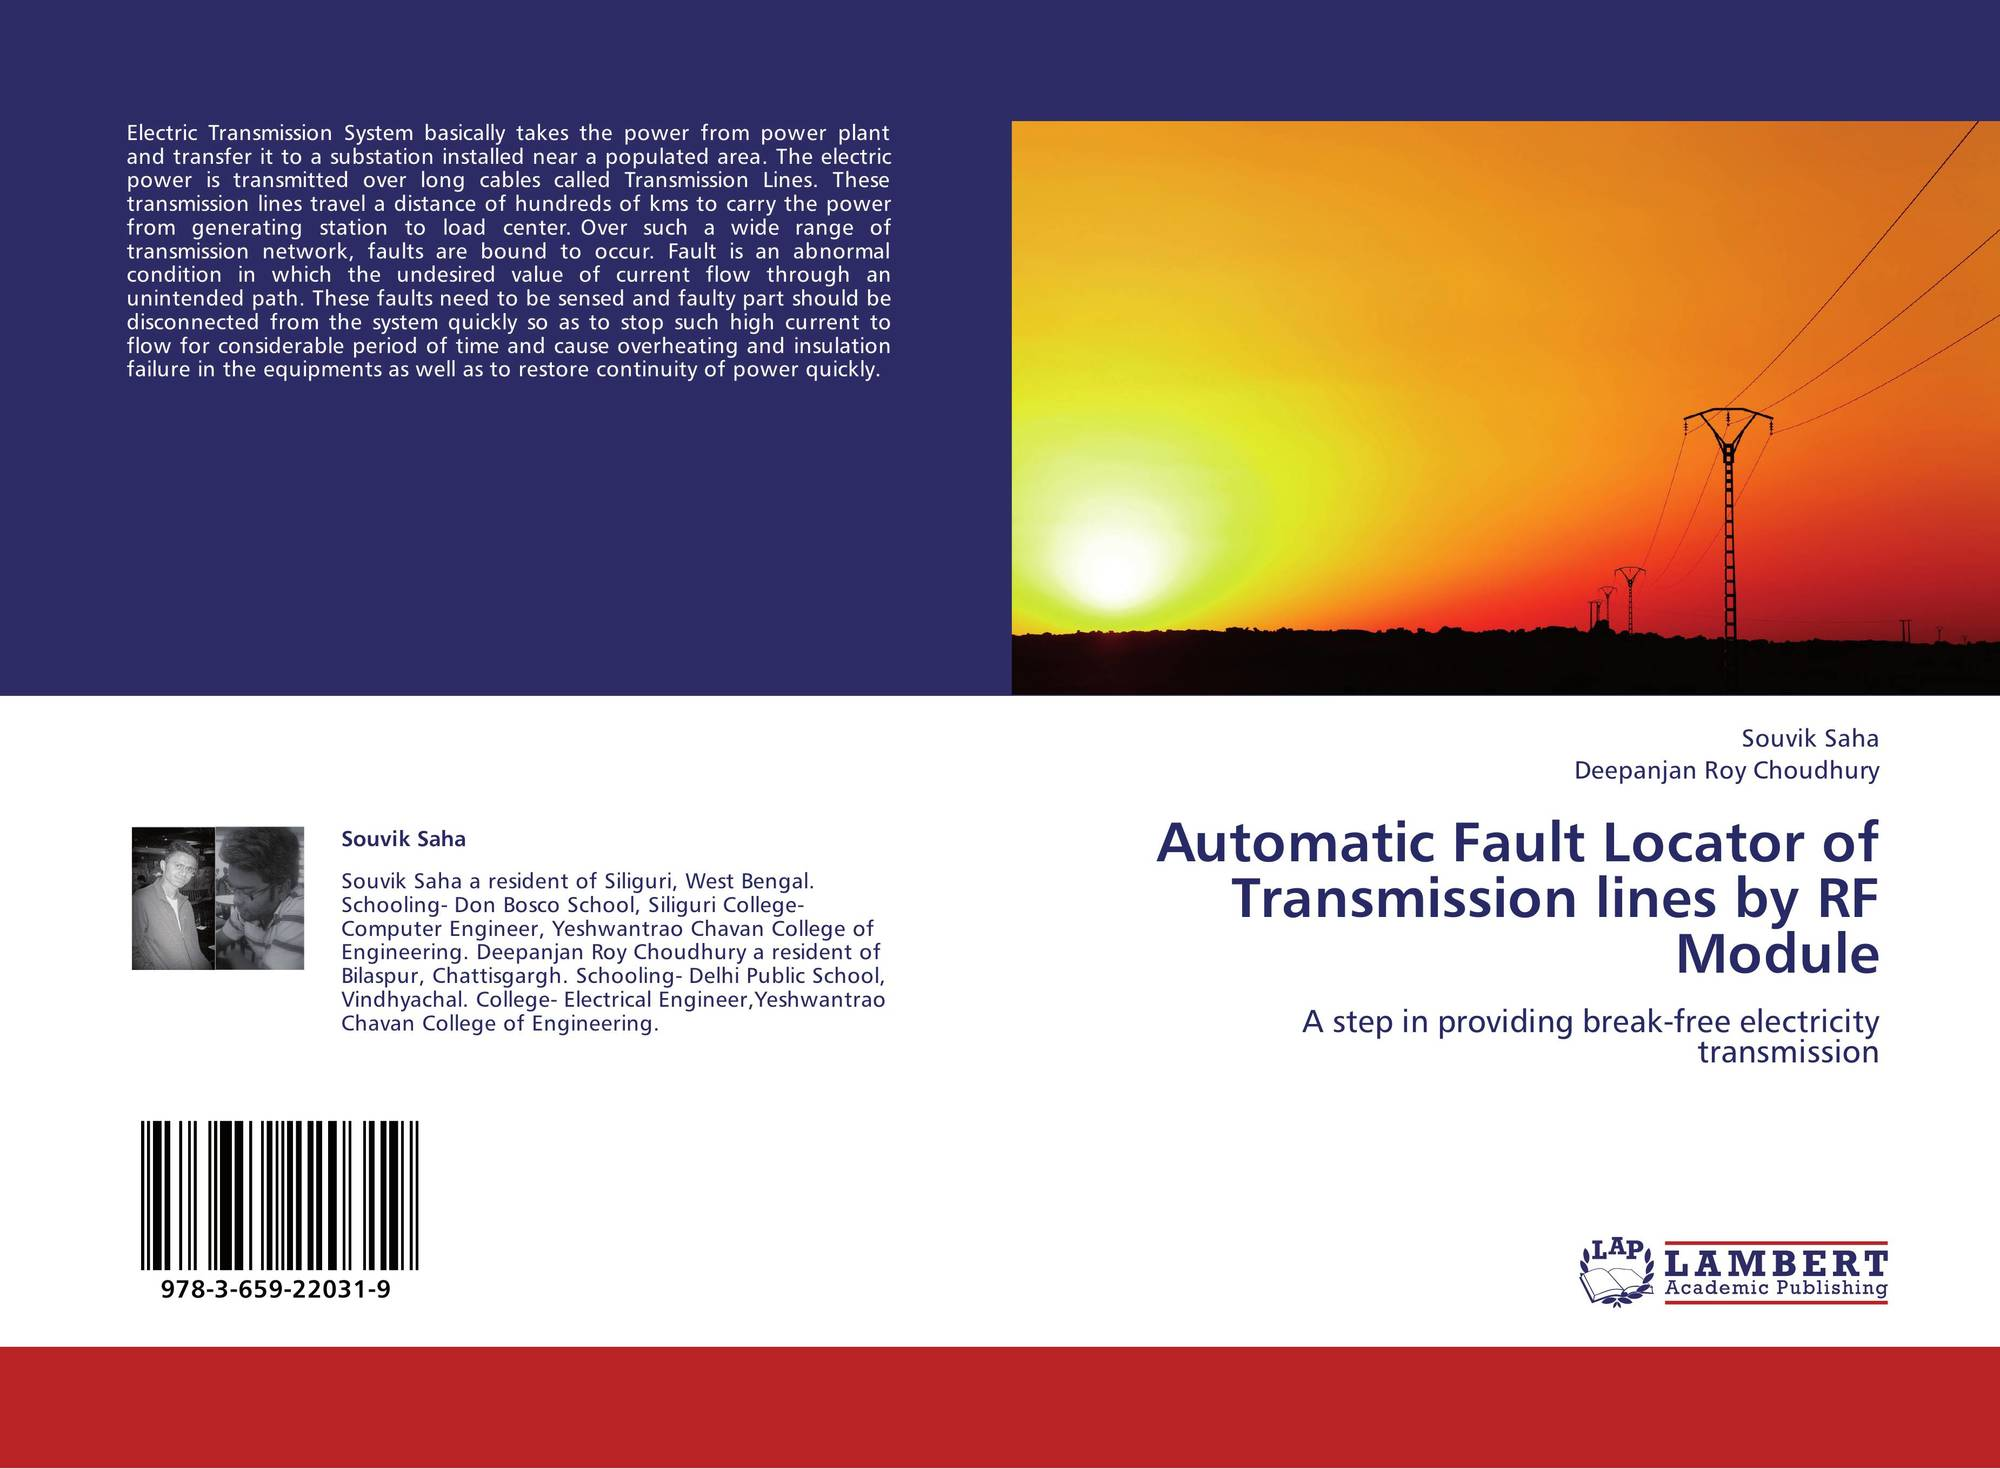 Automatic Fault Locator of Transmission lines by RF Module, 978-3